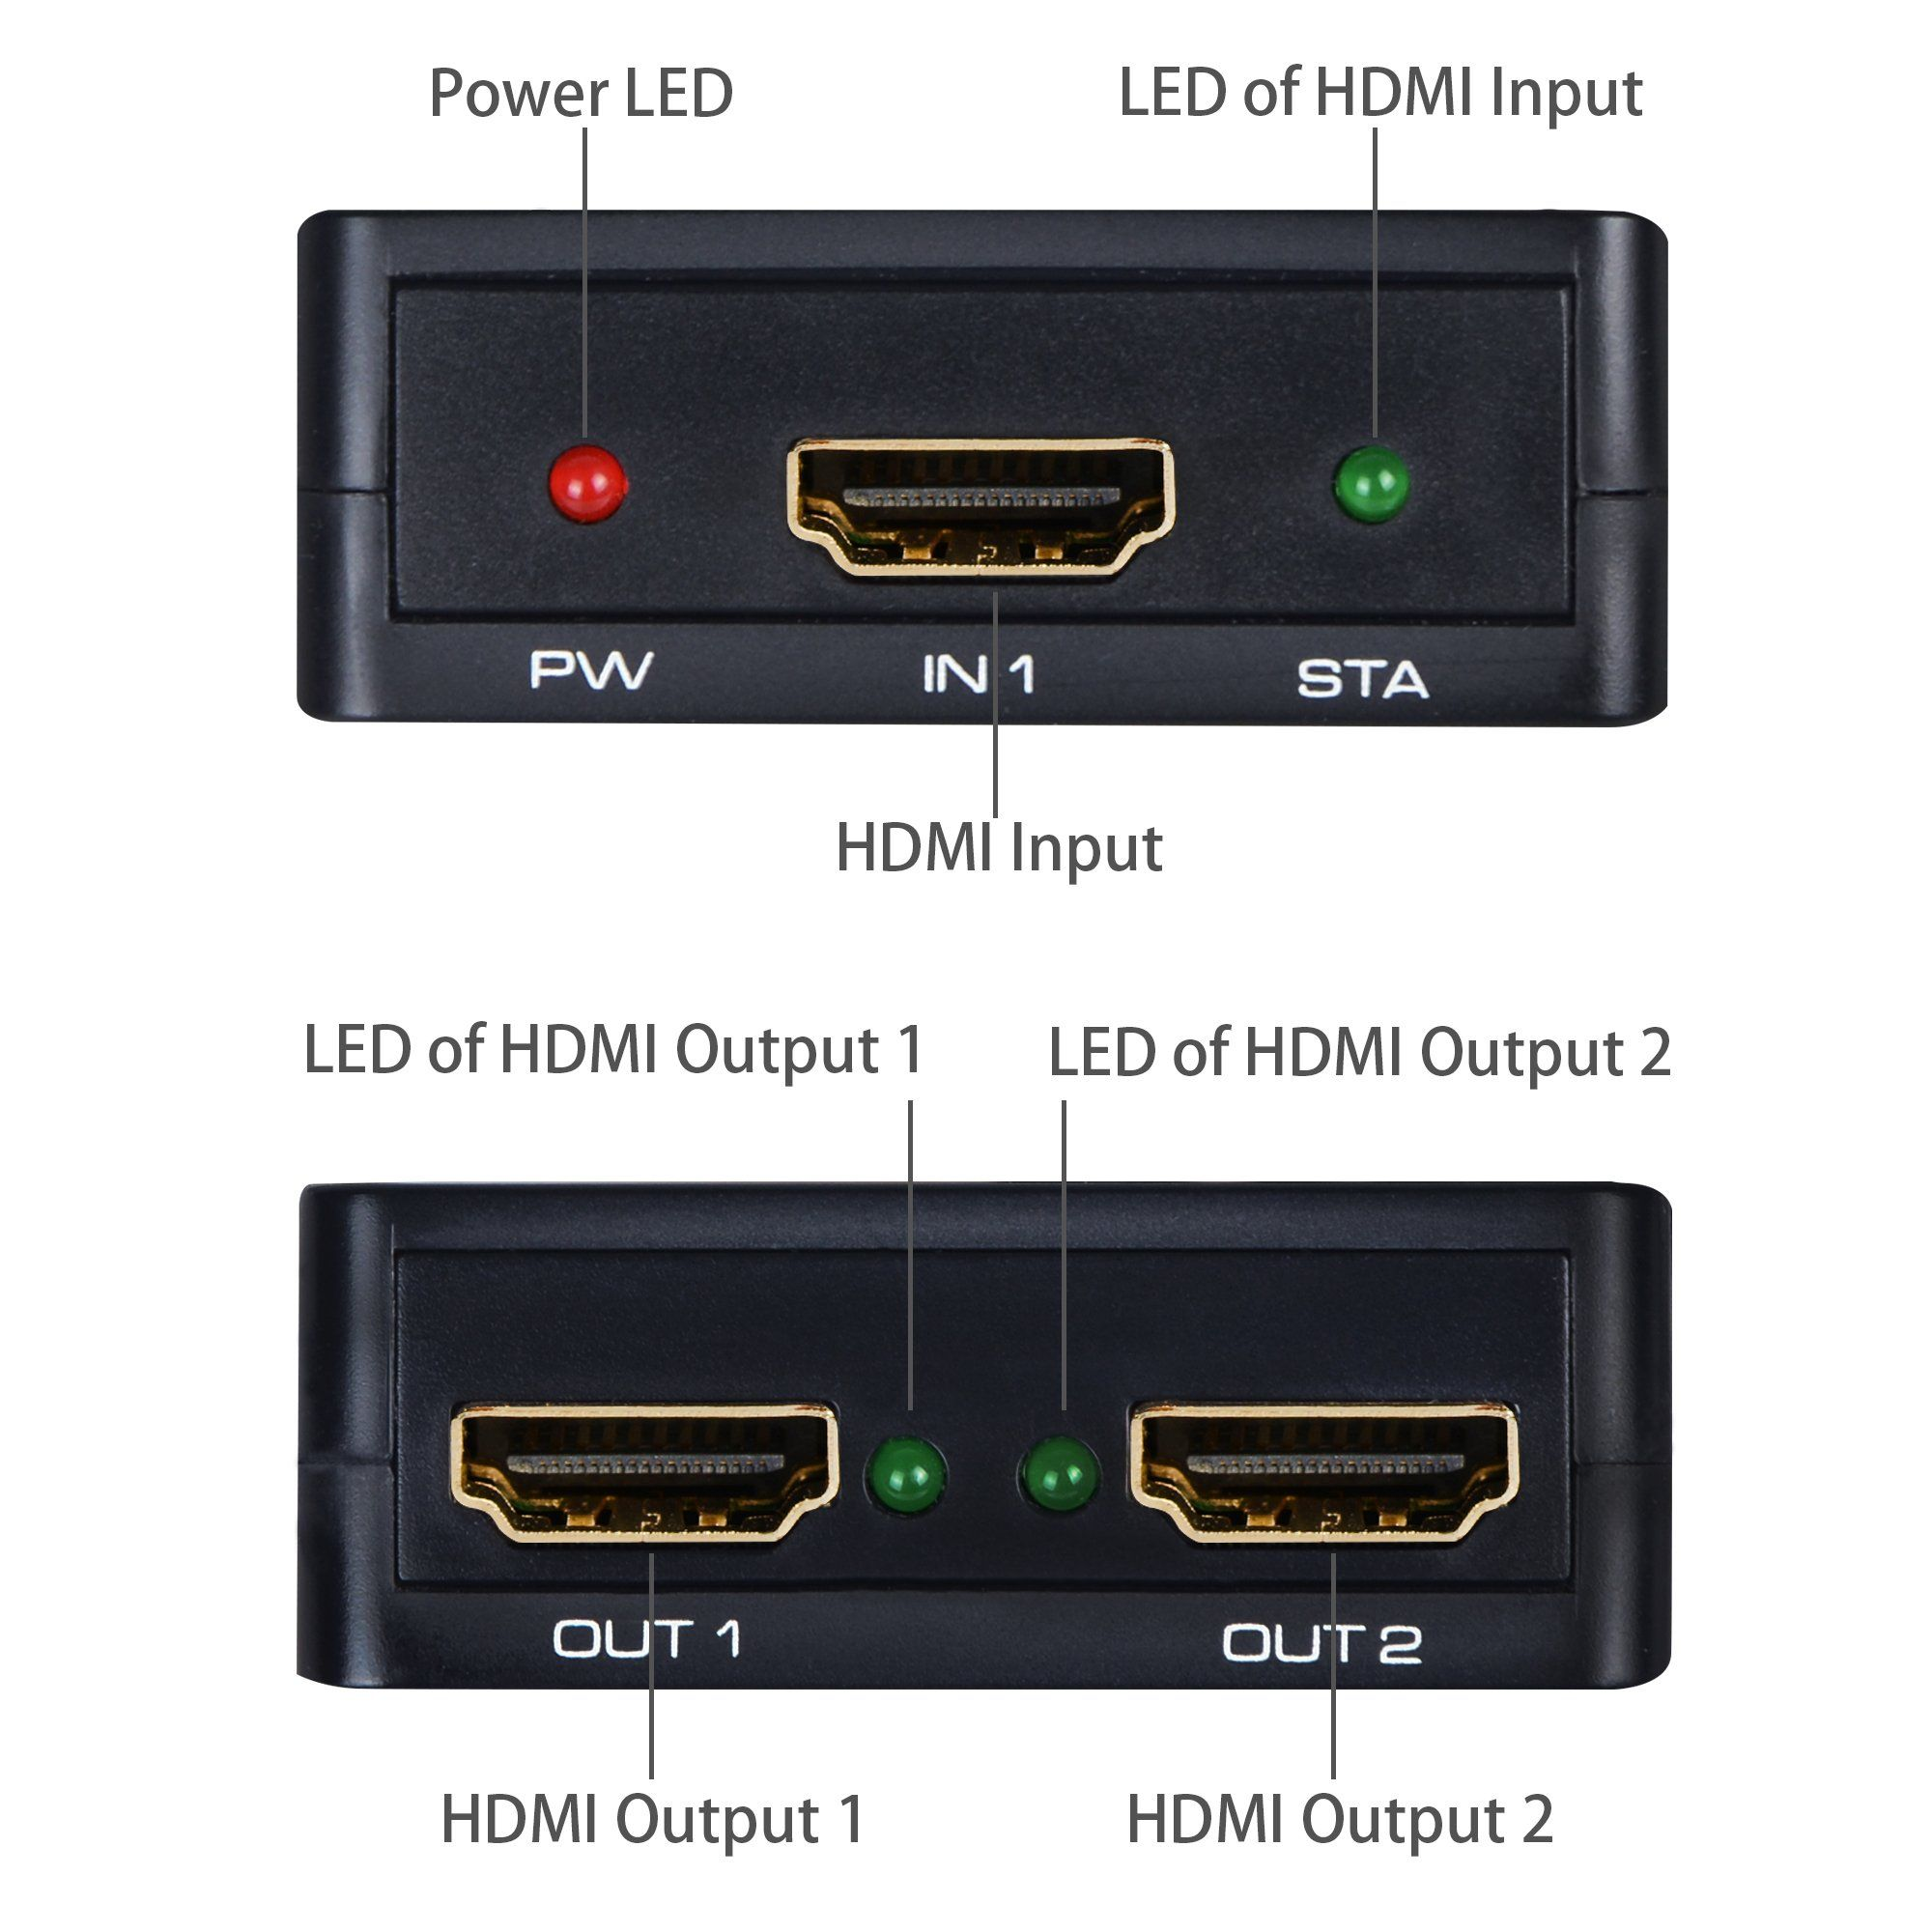 Hdmi Splitter 1 In 2 Out Avedio Links 4k Hdmi Splitter 1x2 With High Speed Hdmi Cable 1 Source To 2 Monitors Usb Cord For Xbox Hdmi Splitter Hdmi Hdmi Cables